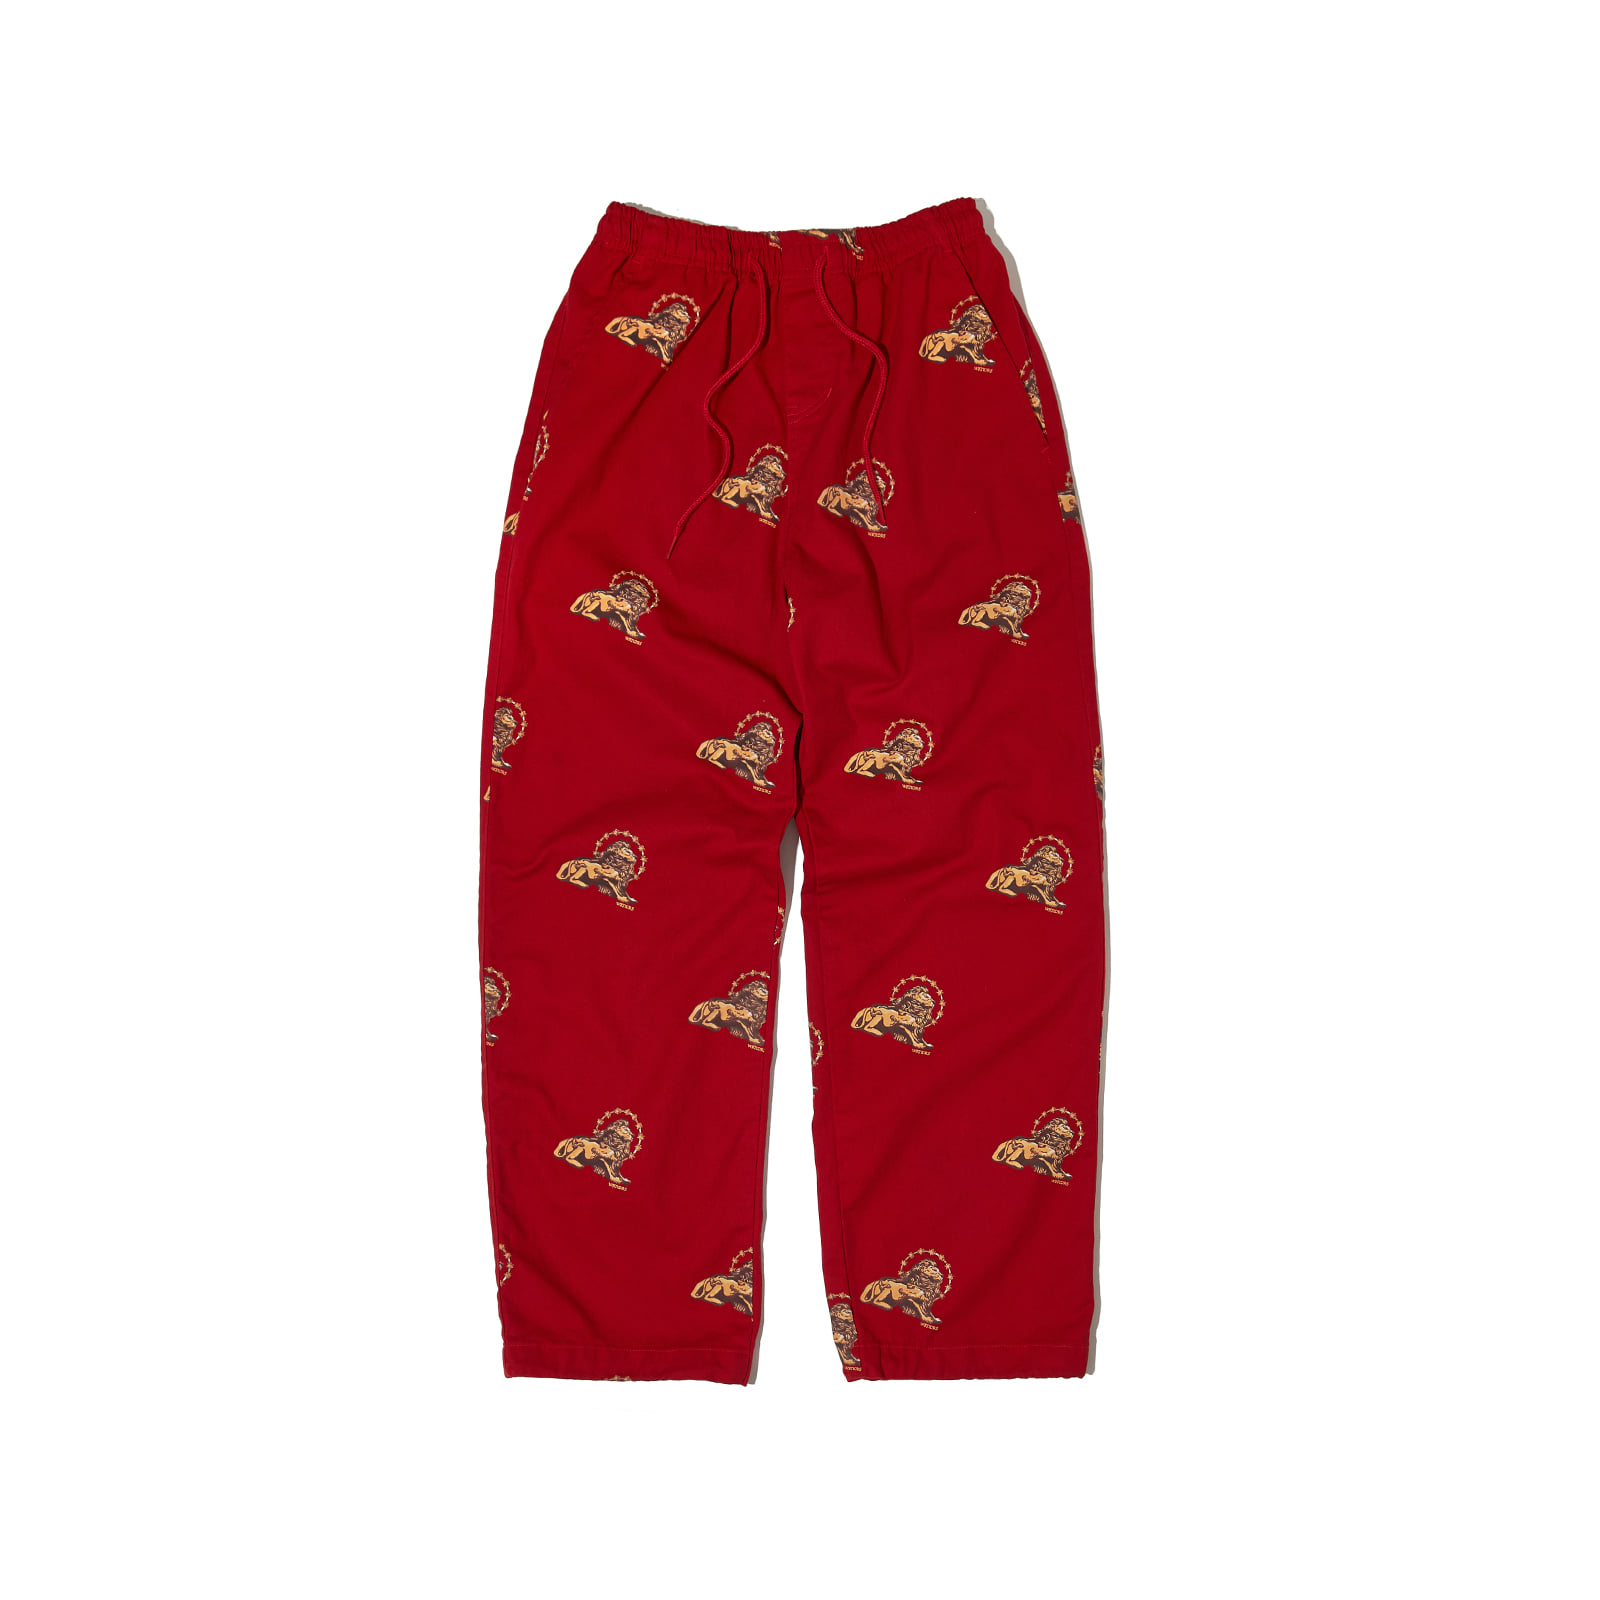 KING PANTS (RED)